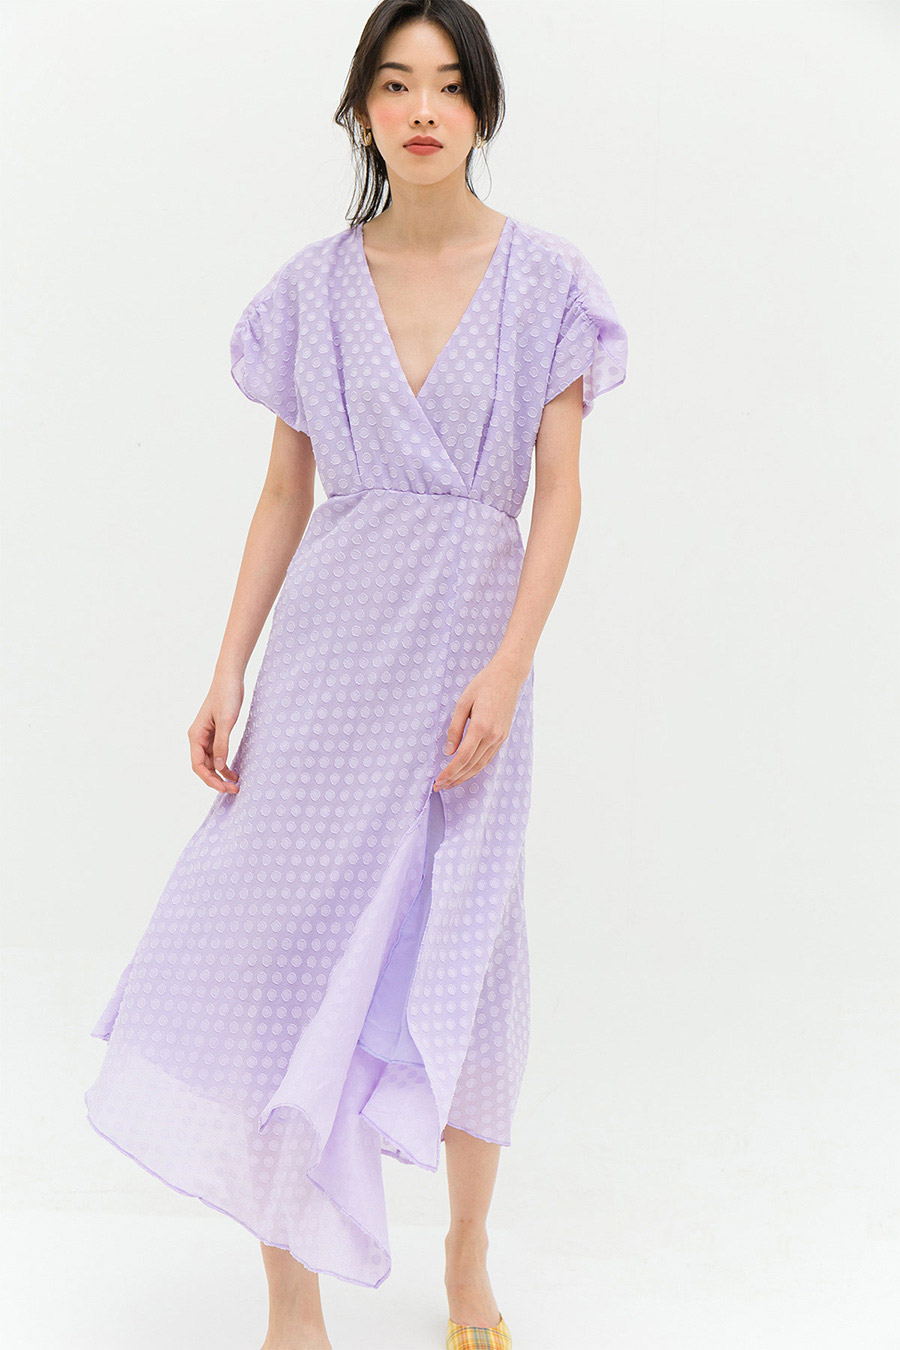 *RESTOCKED* LAFAILLE DRESS - WISTERIA